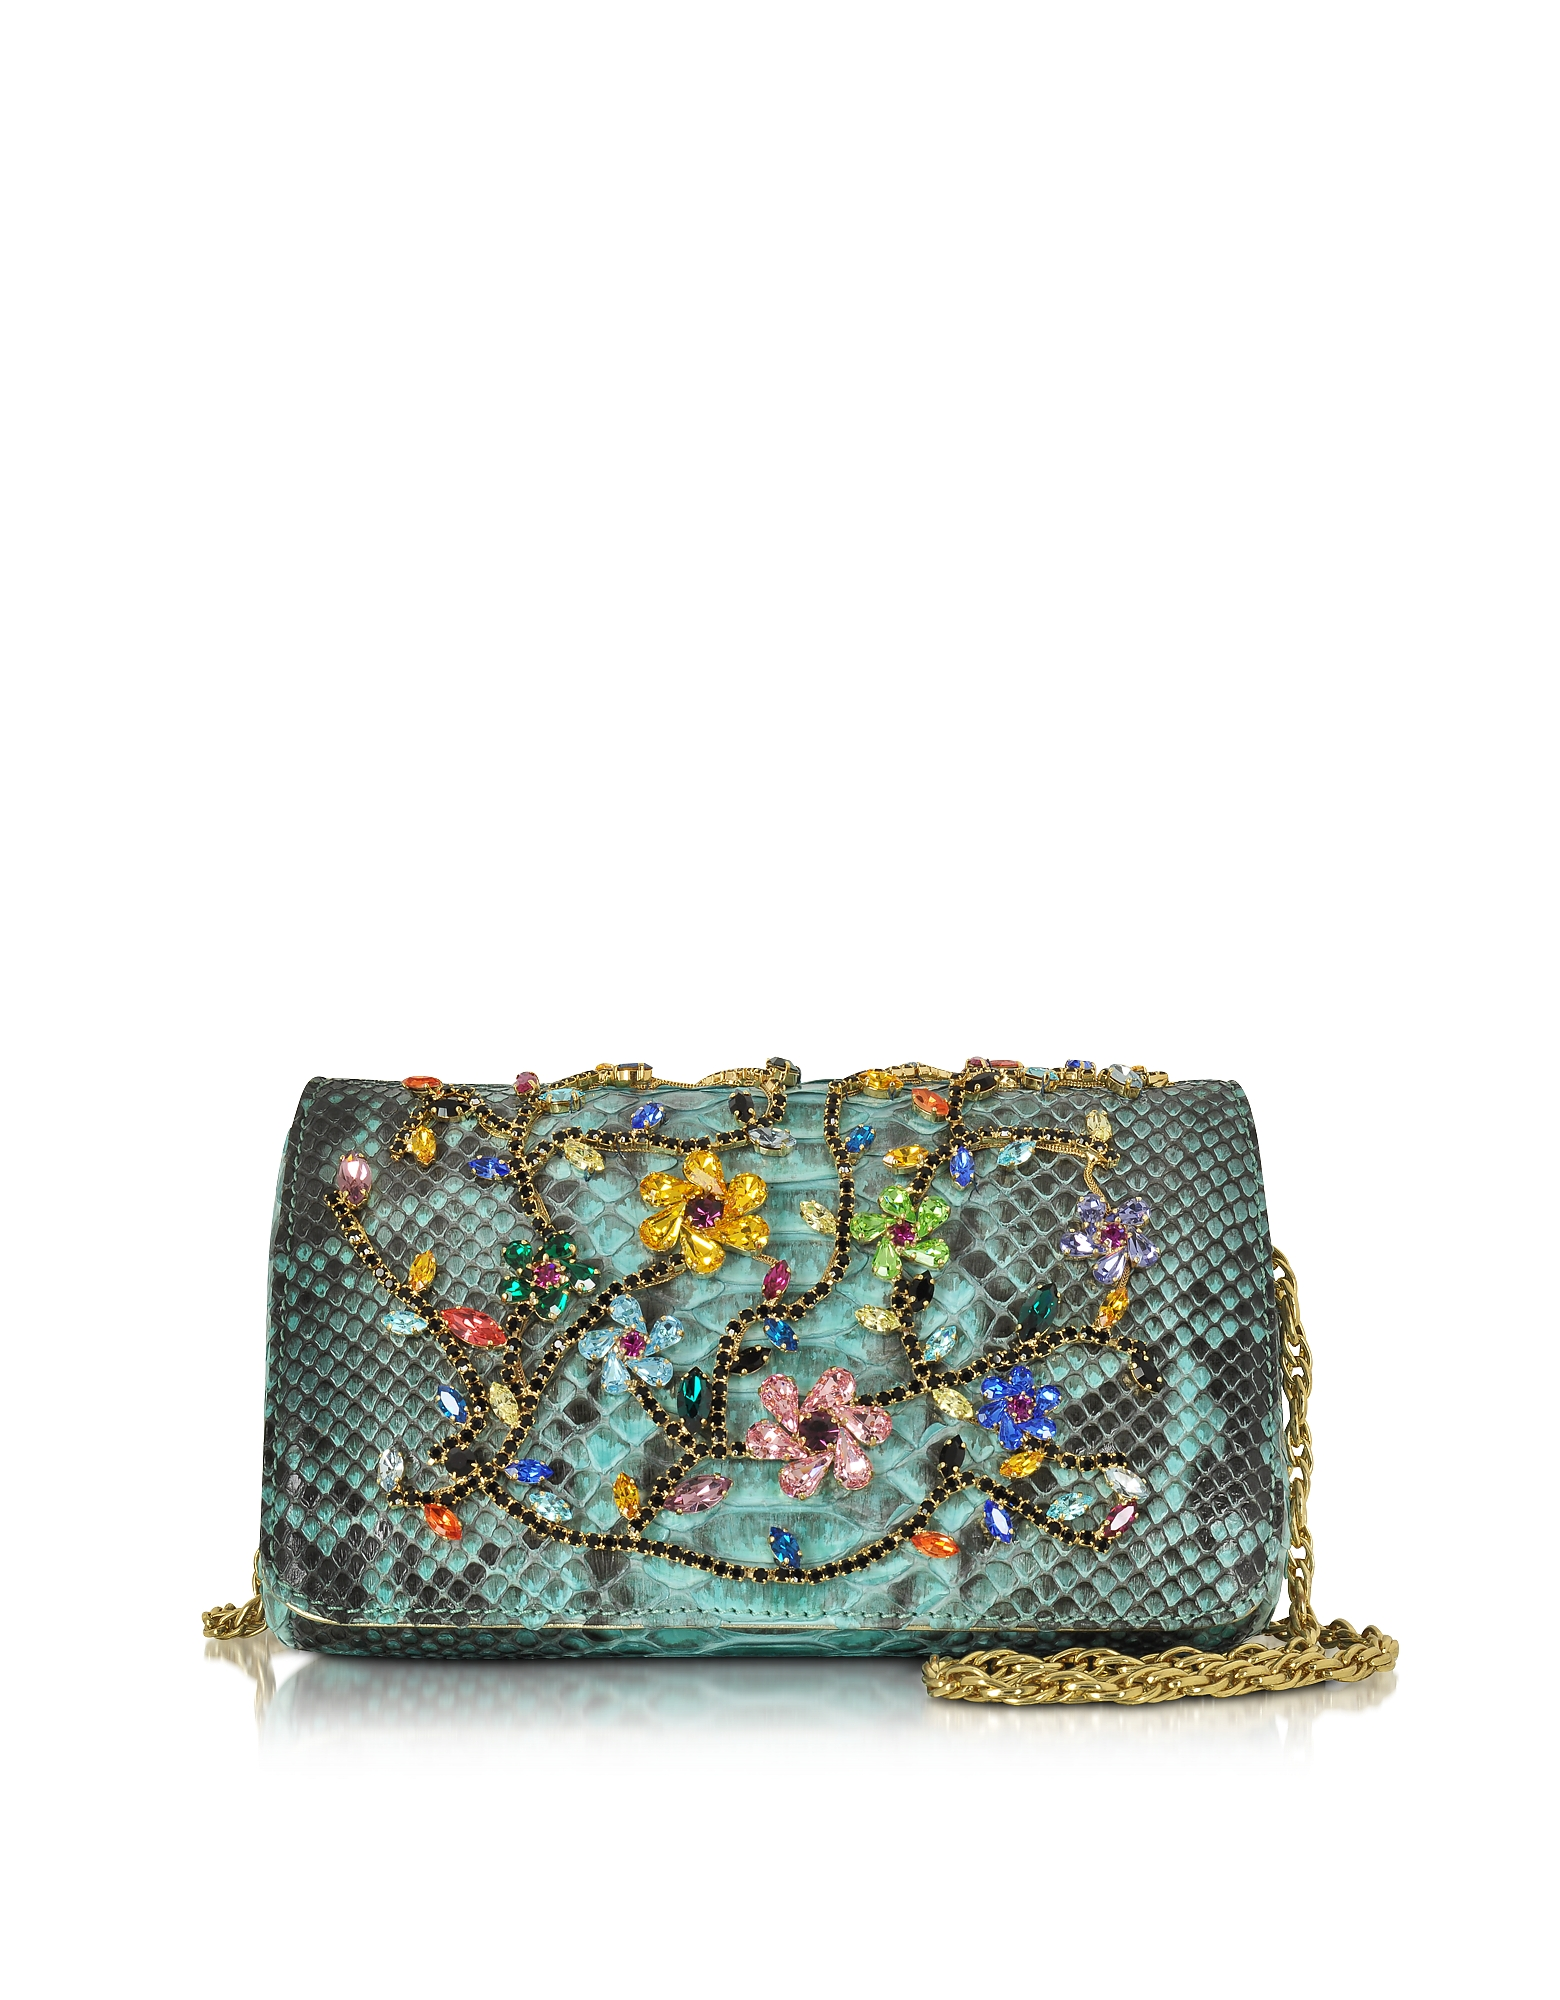 Ghibli Handbags, Turquoise Python Mini Crossbody Bag w/Multicolor Crystals